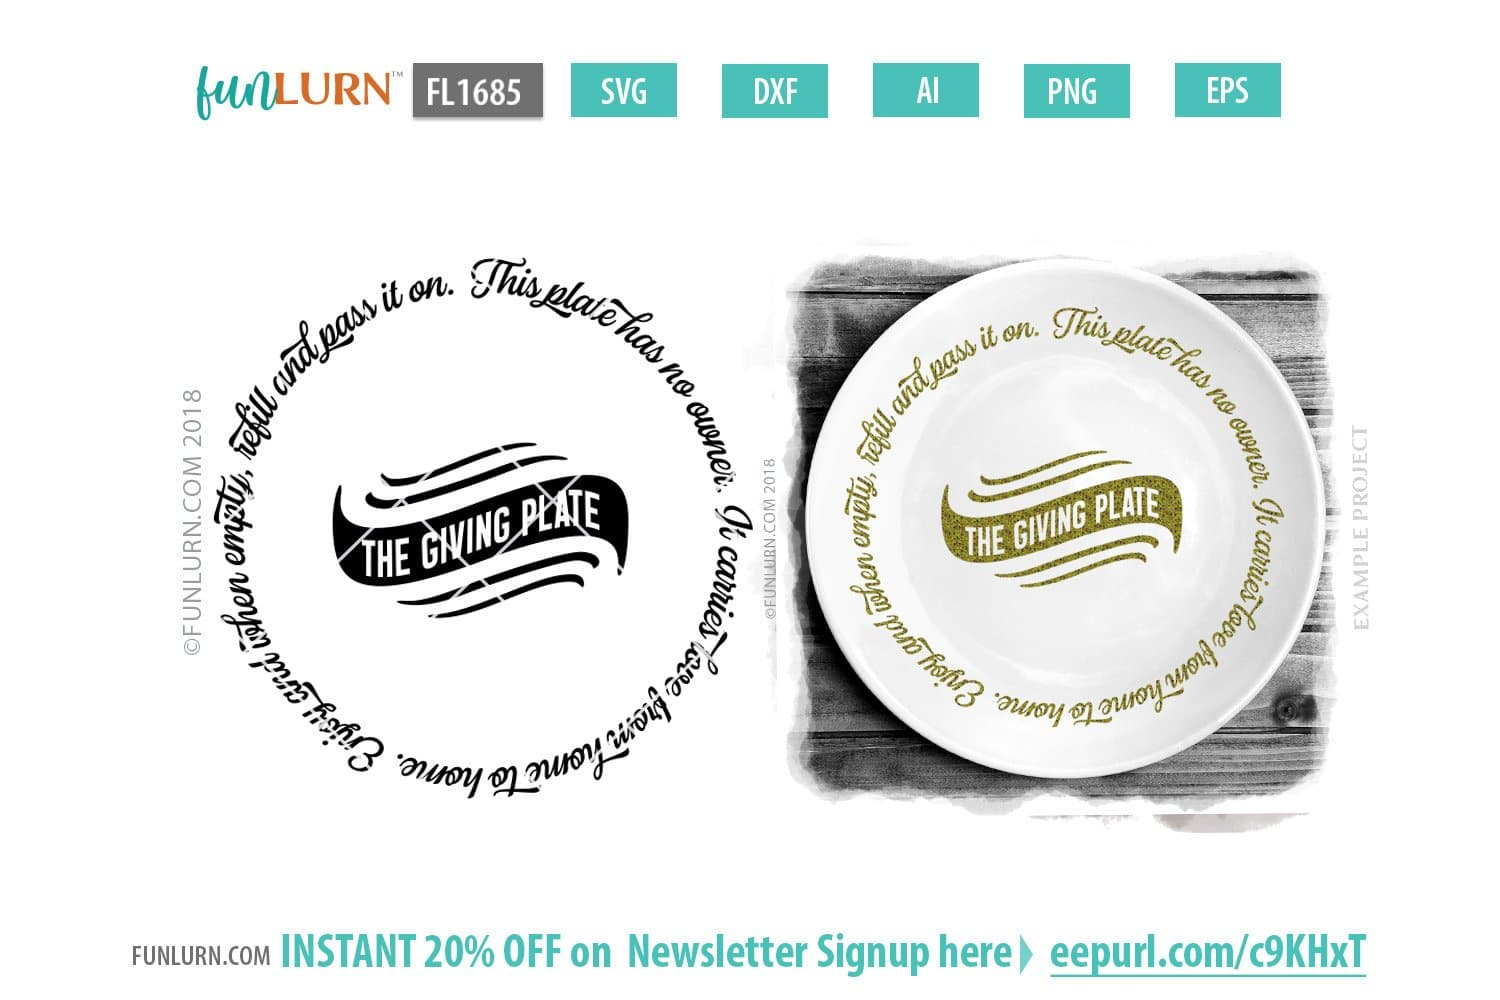 The Giving Plate Svg Circular Design Funlurn